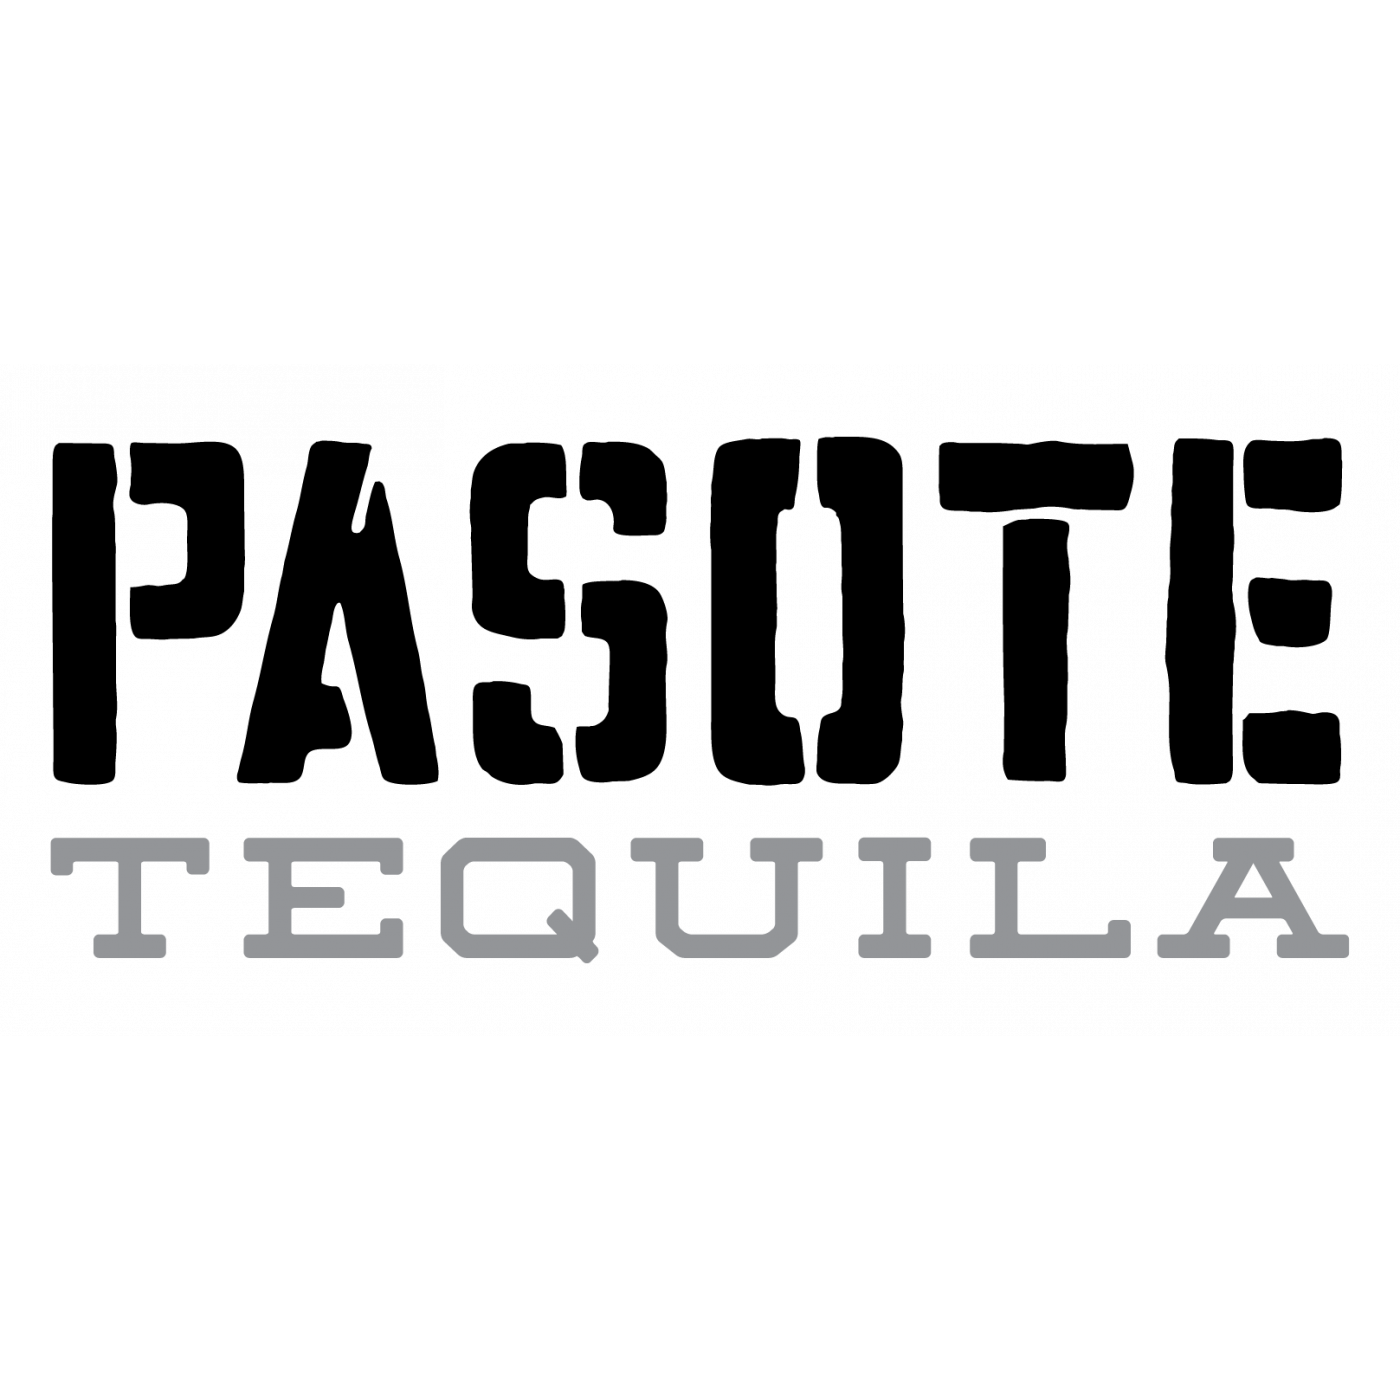 pasote tequila.png